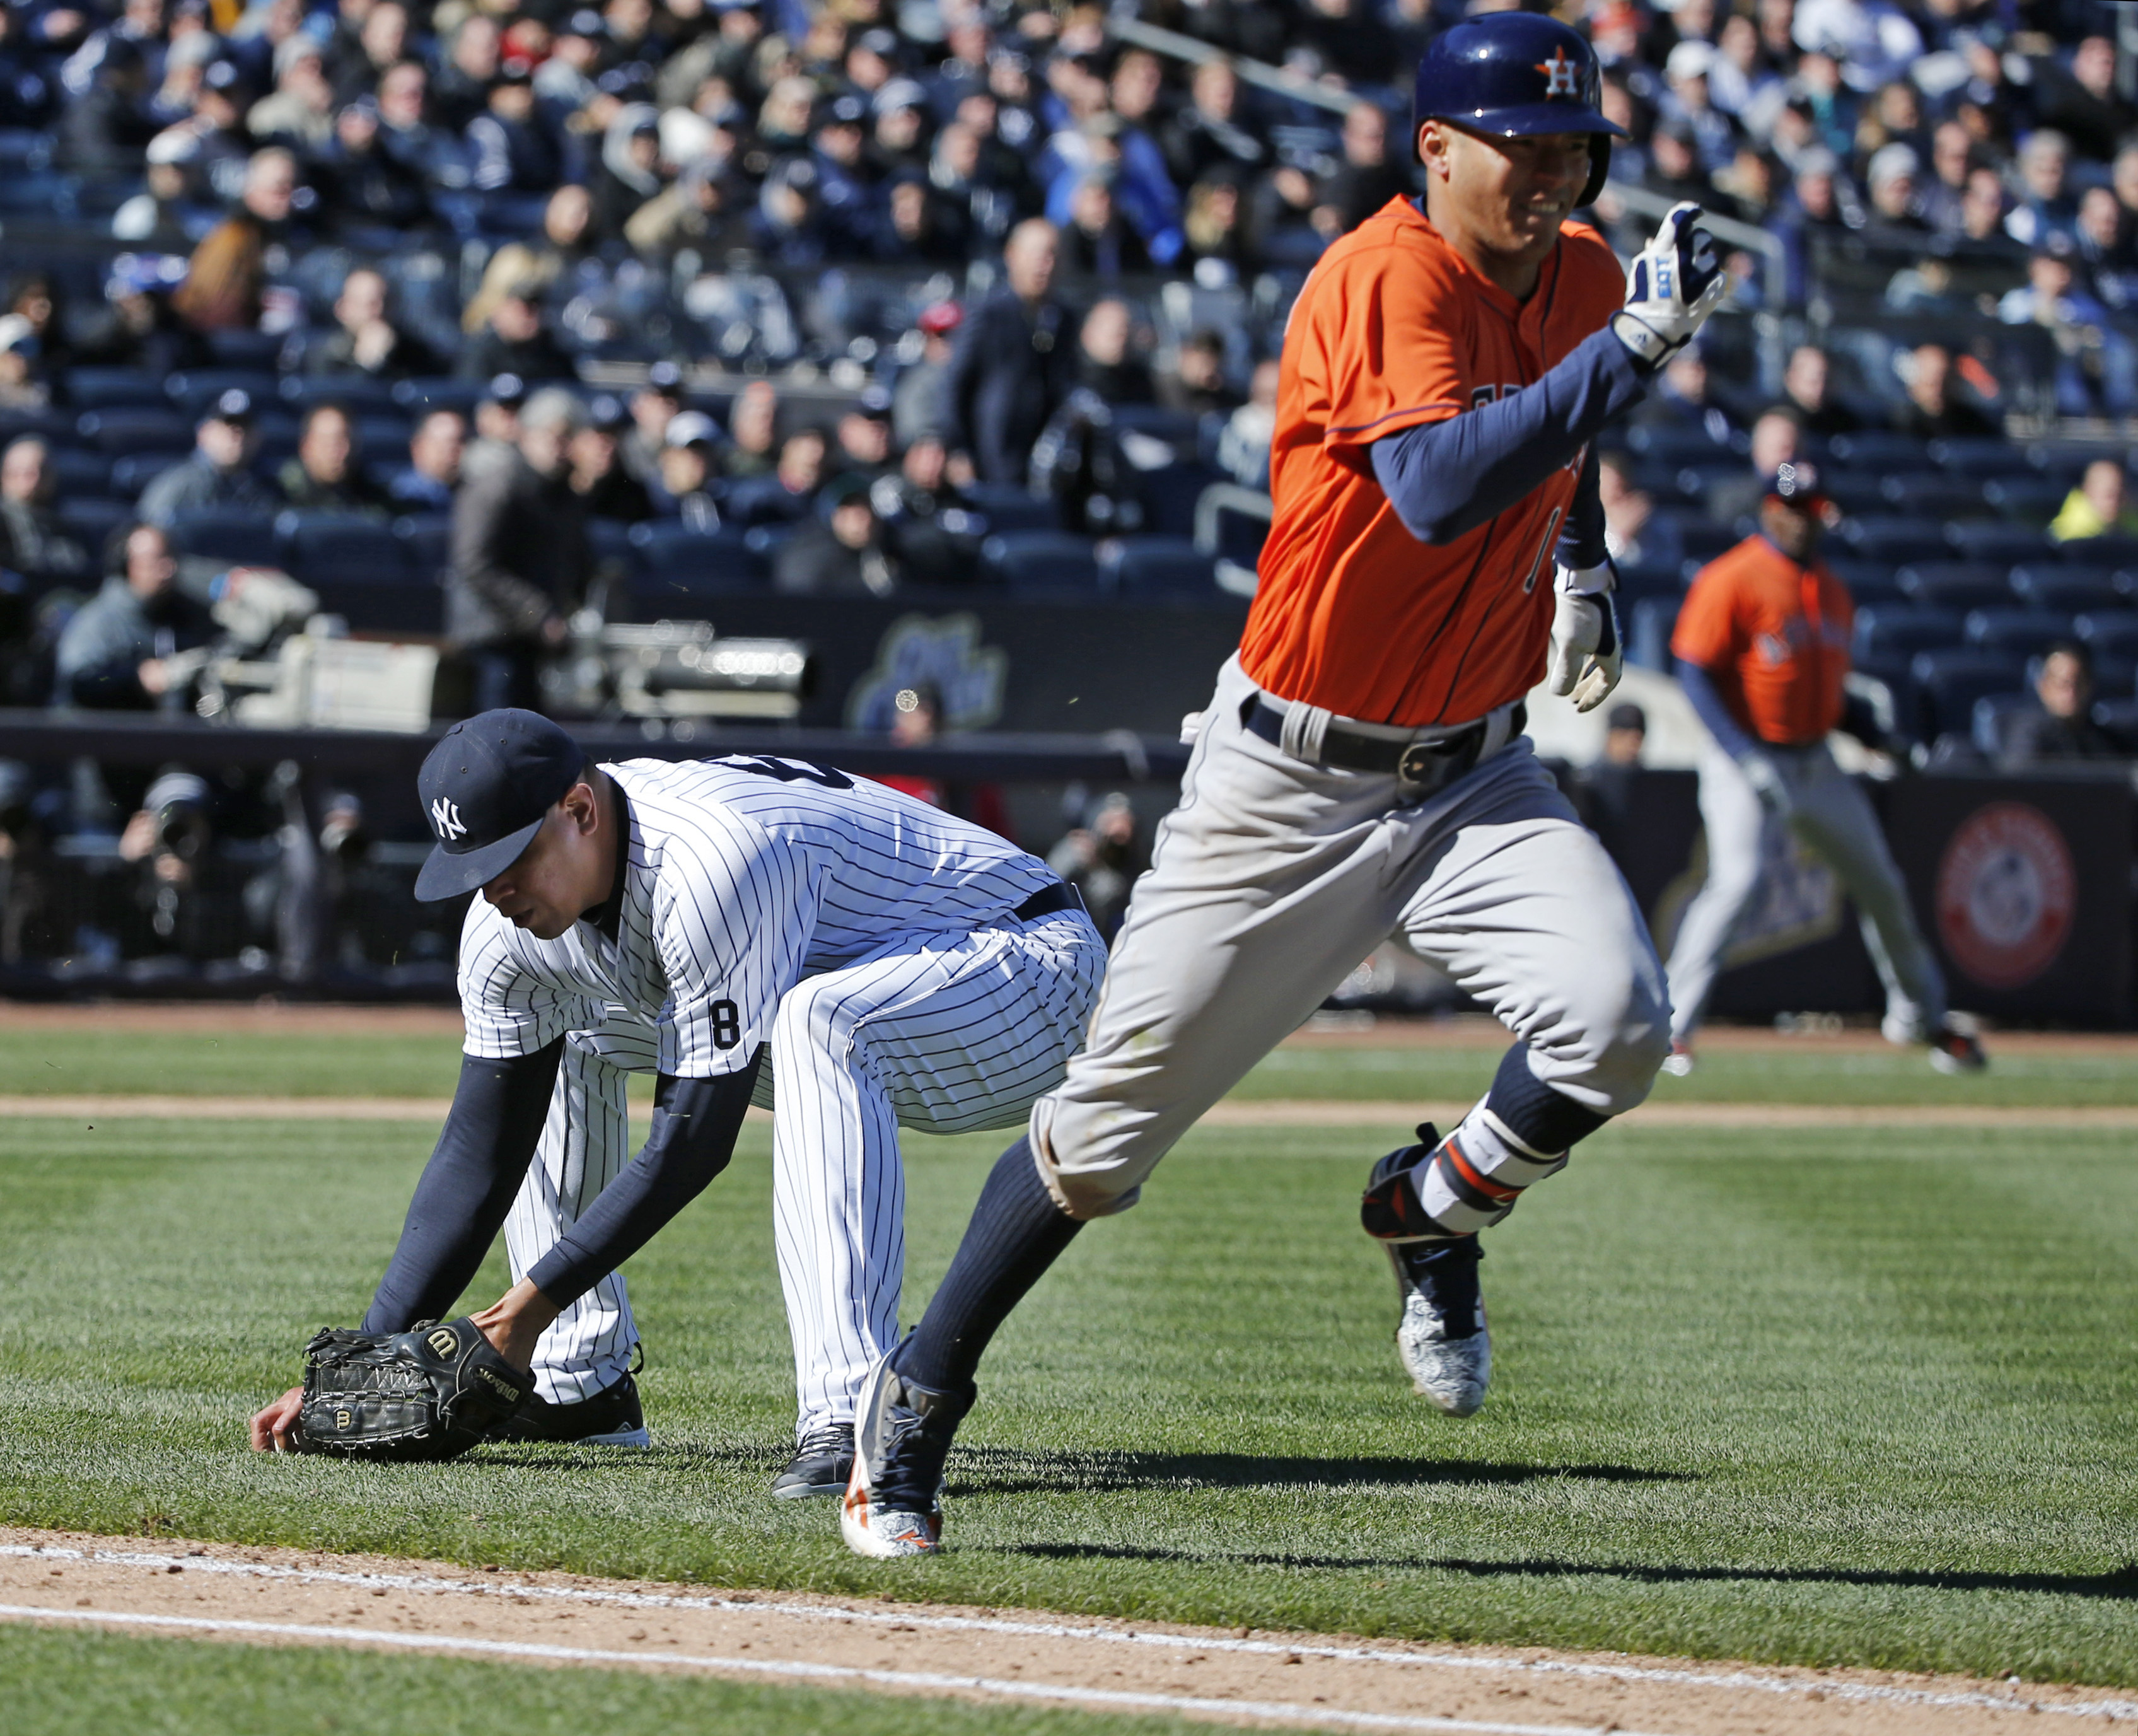 New York Yankees relief pitcher Dellin Betances (68) picks up Carlos Correa's eighth-inning infield roller as Correa races to first base in an opening day baseball game in New York, Tuesday, April 5, 2016. Correa reached on a Betances throwing error, but